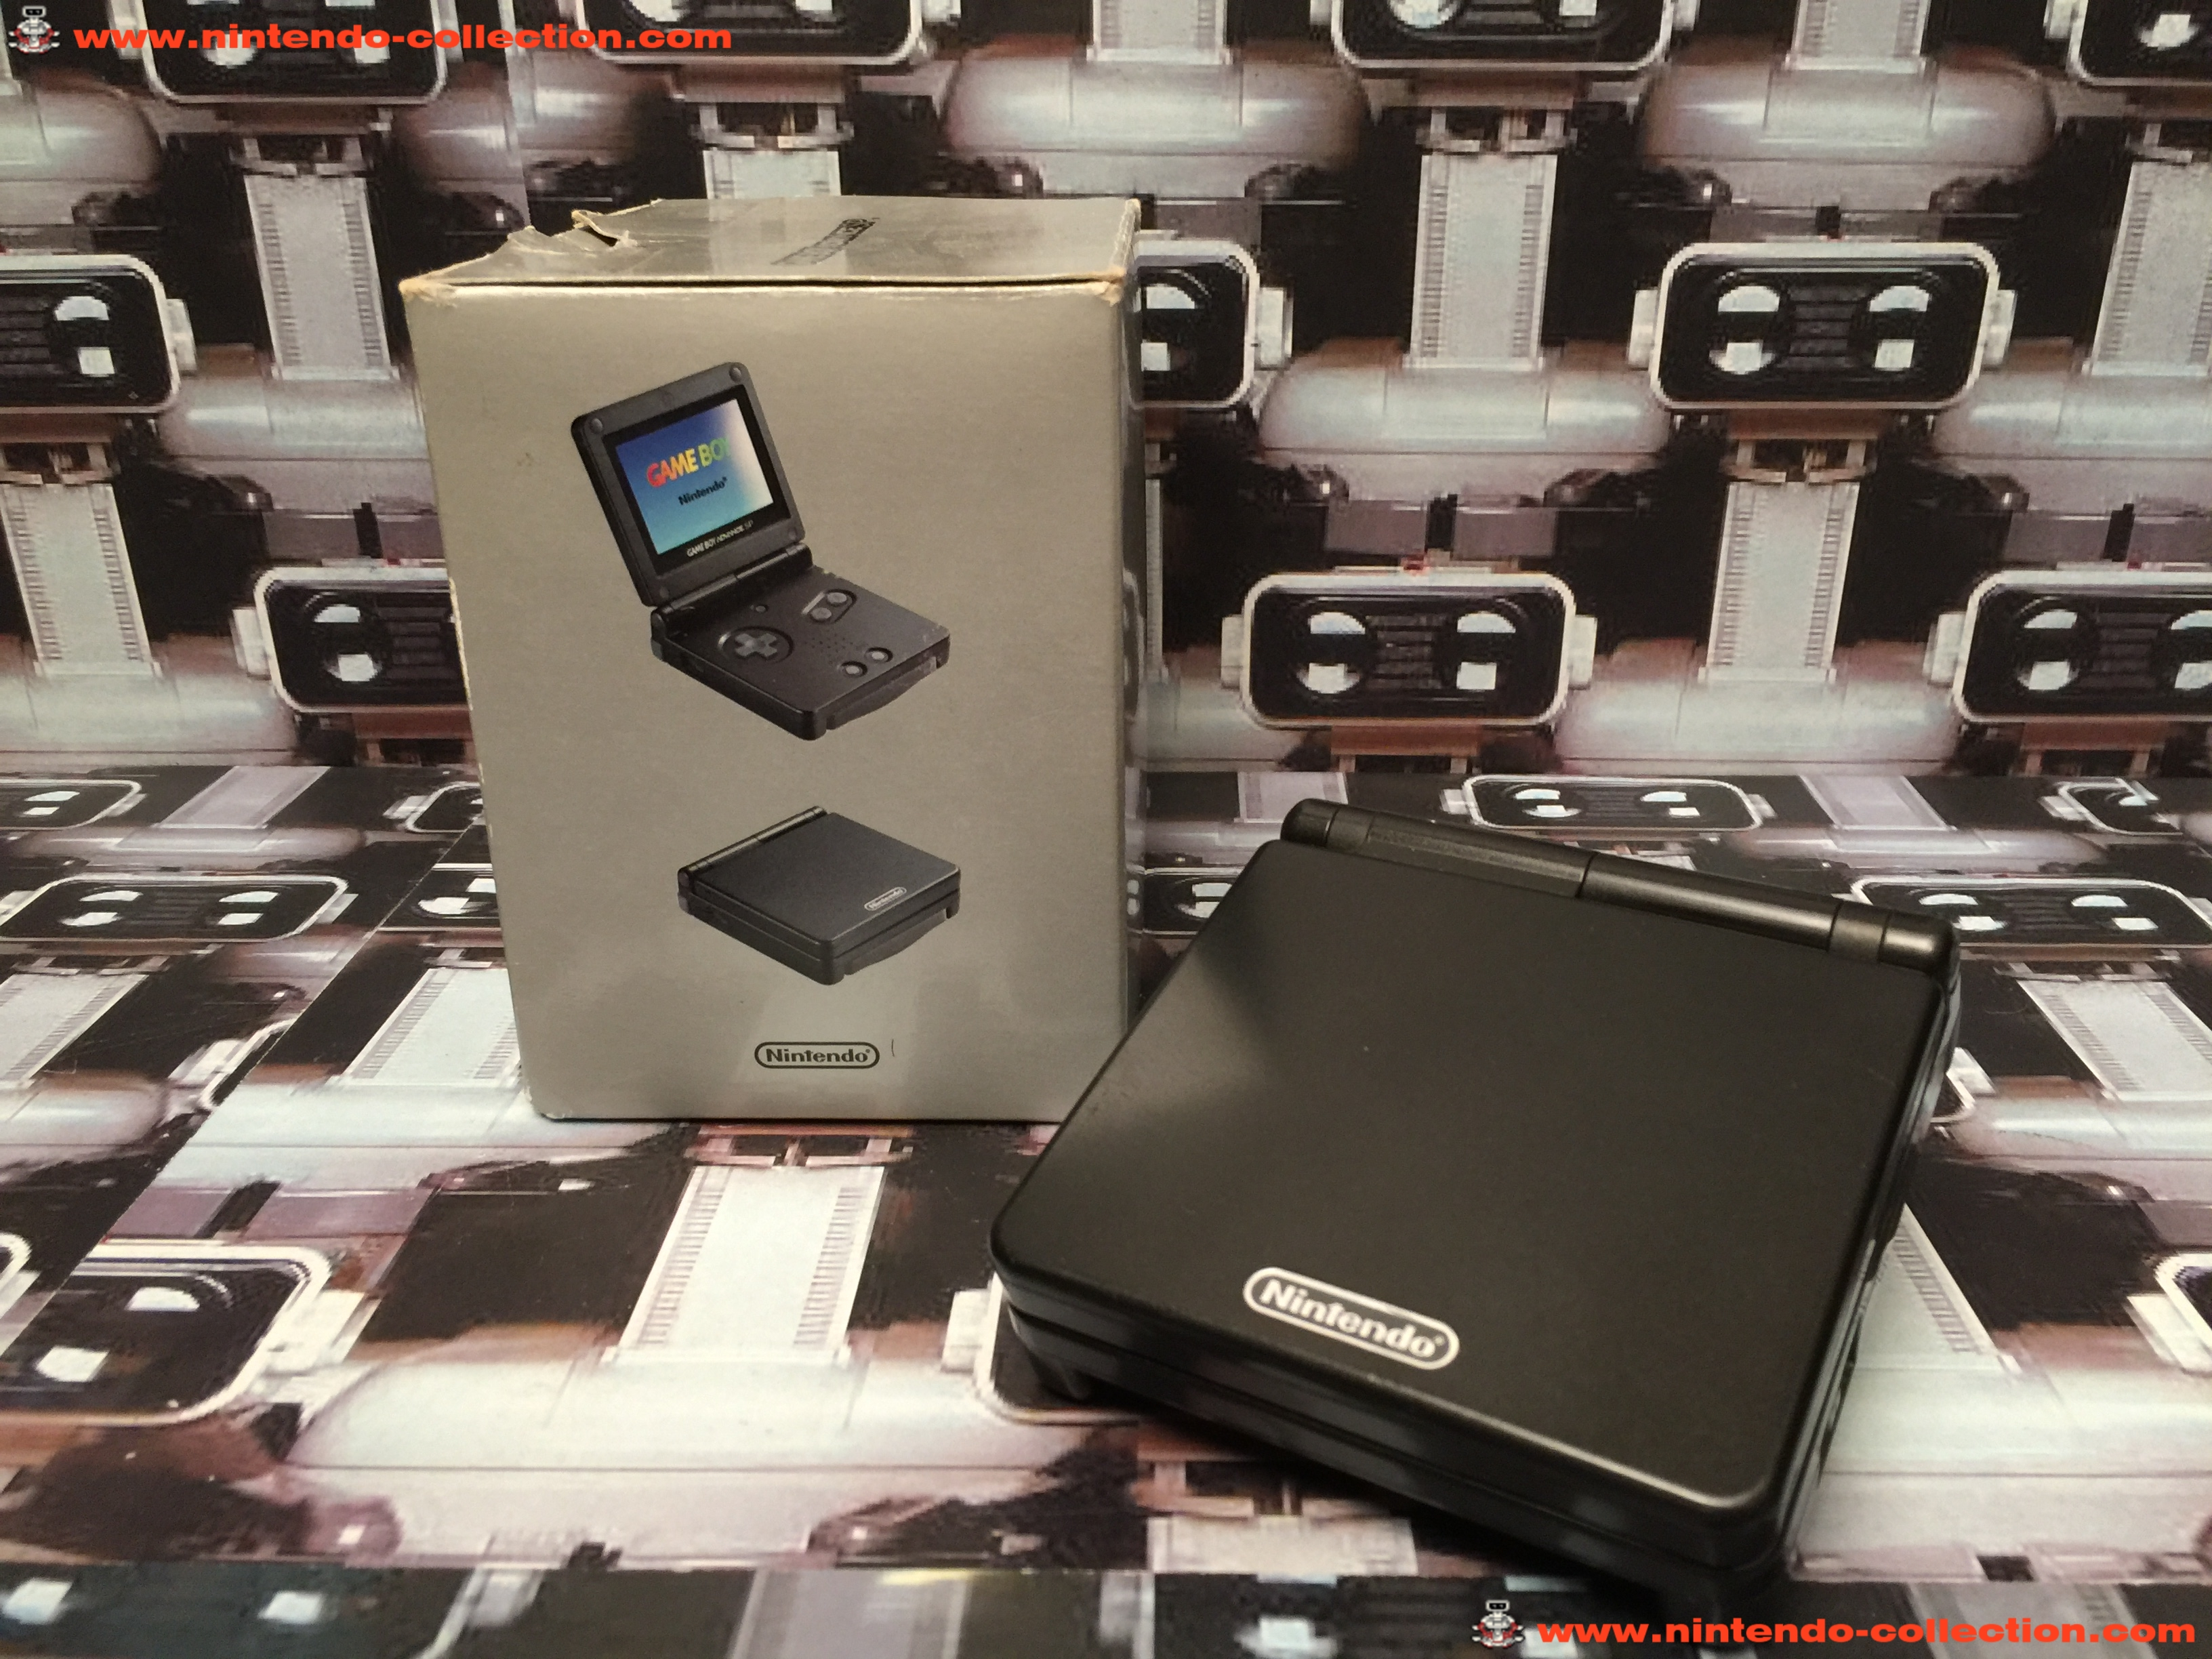 www.nintendo-collection.com - Gameboy Advance GBA SP Black Noir Edition europeenne european - 02